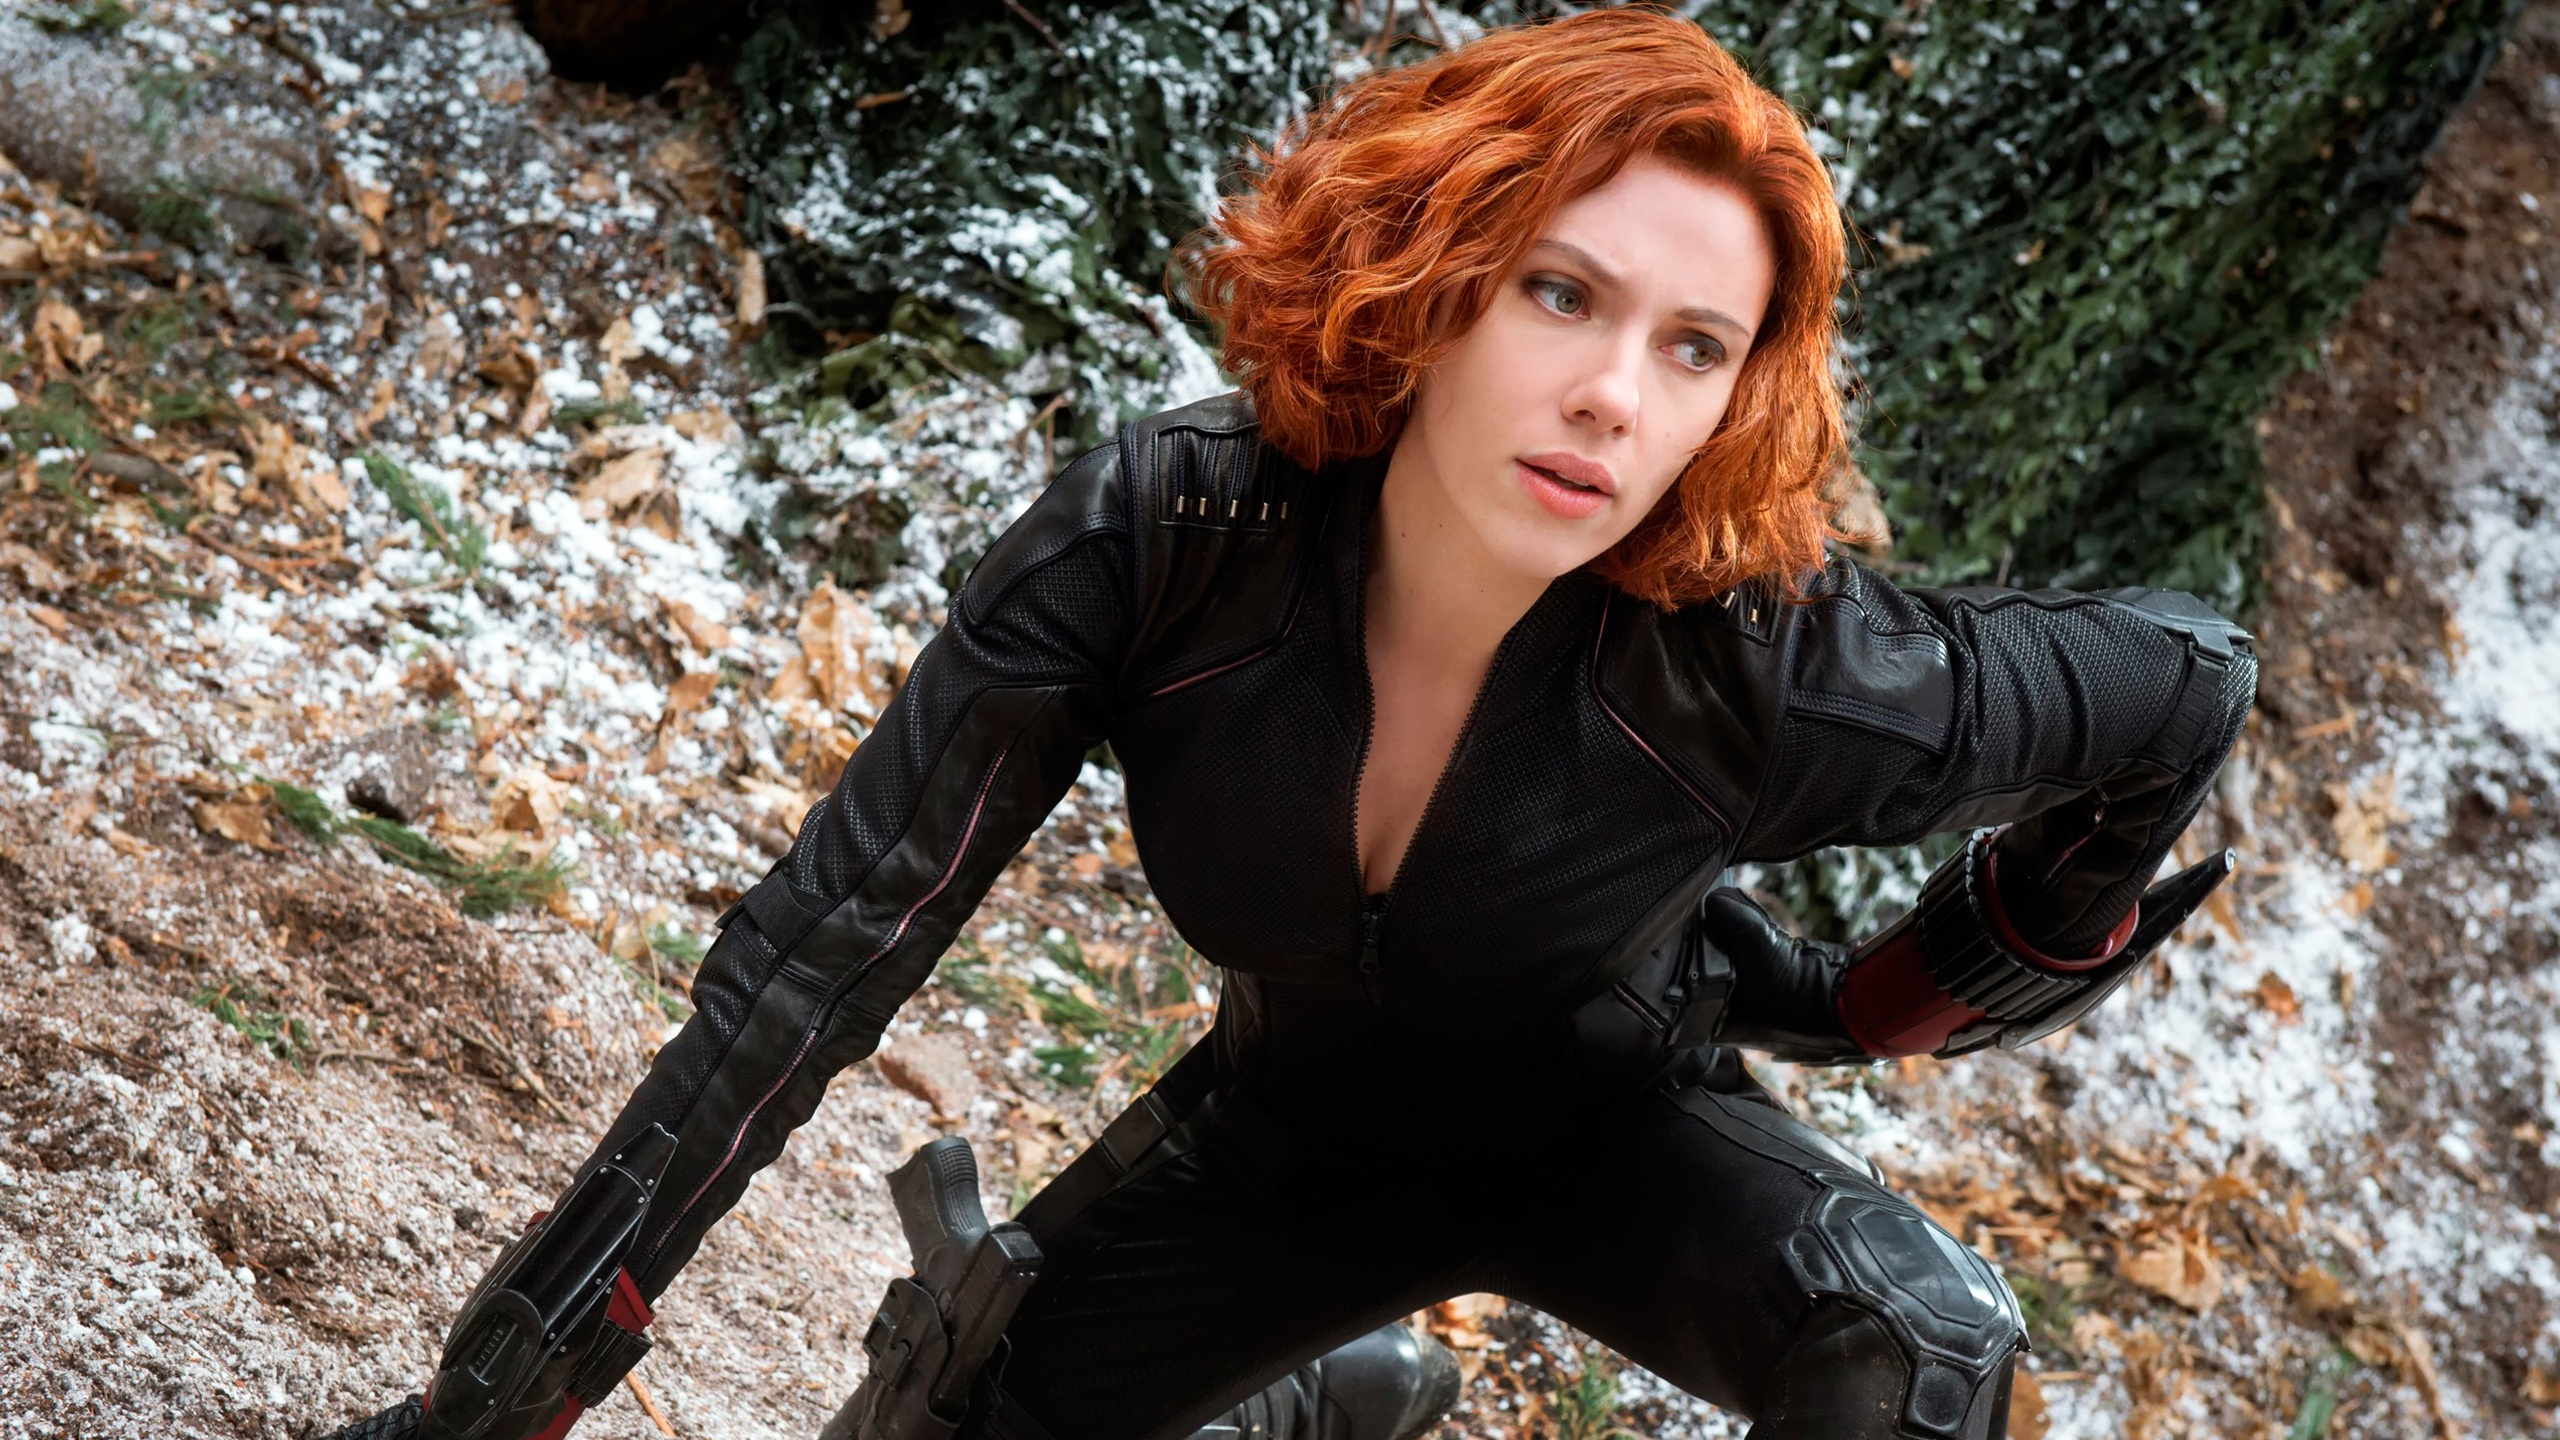 Black Widow in The Avengers 2